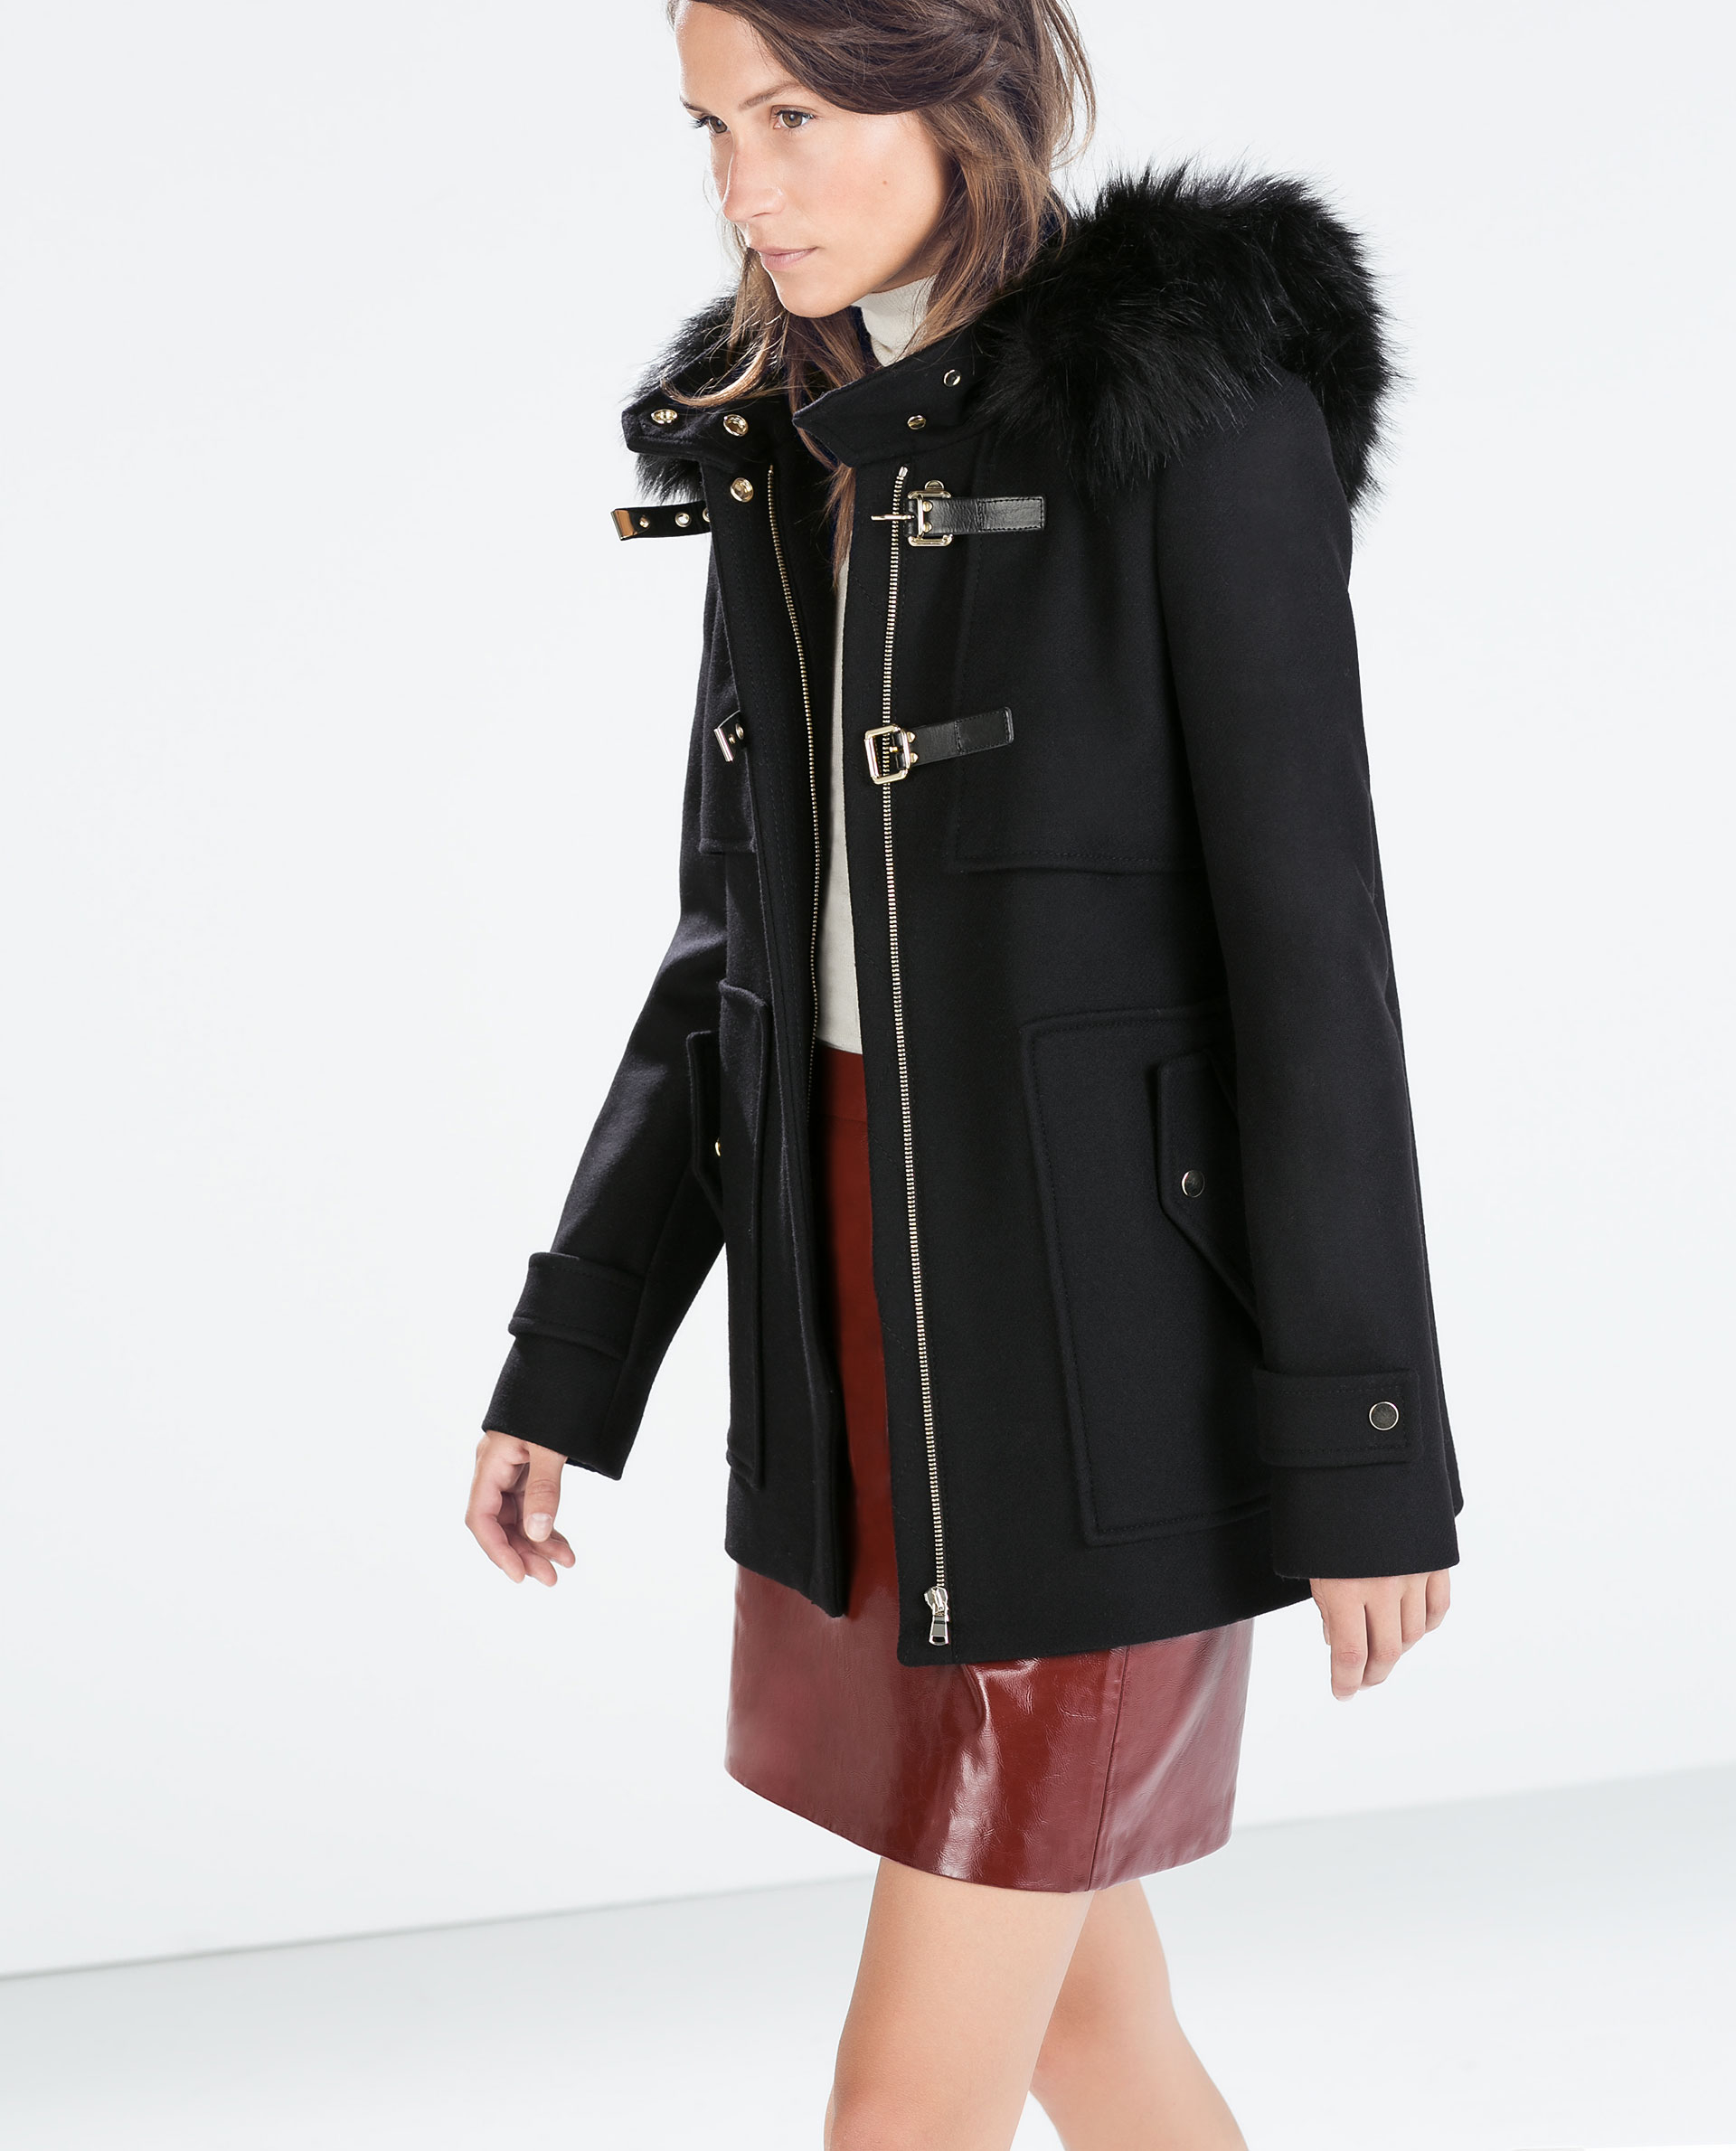 Zara Duffle Coat With Faux Fur Hood in Black | Lyst